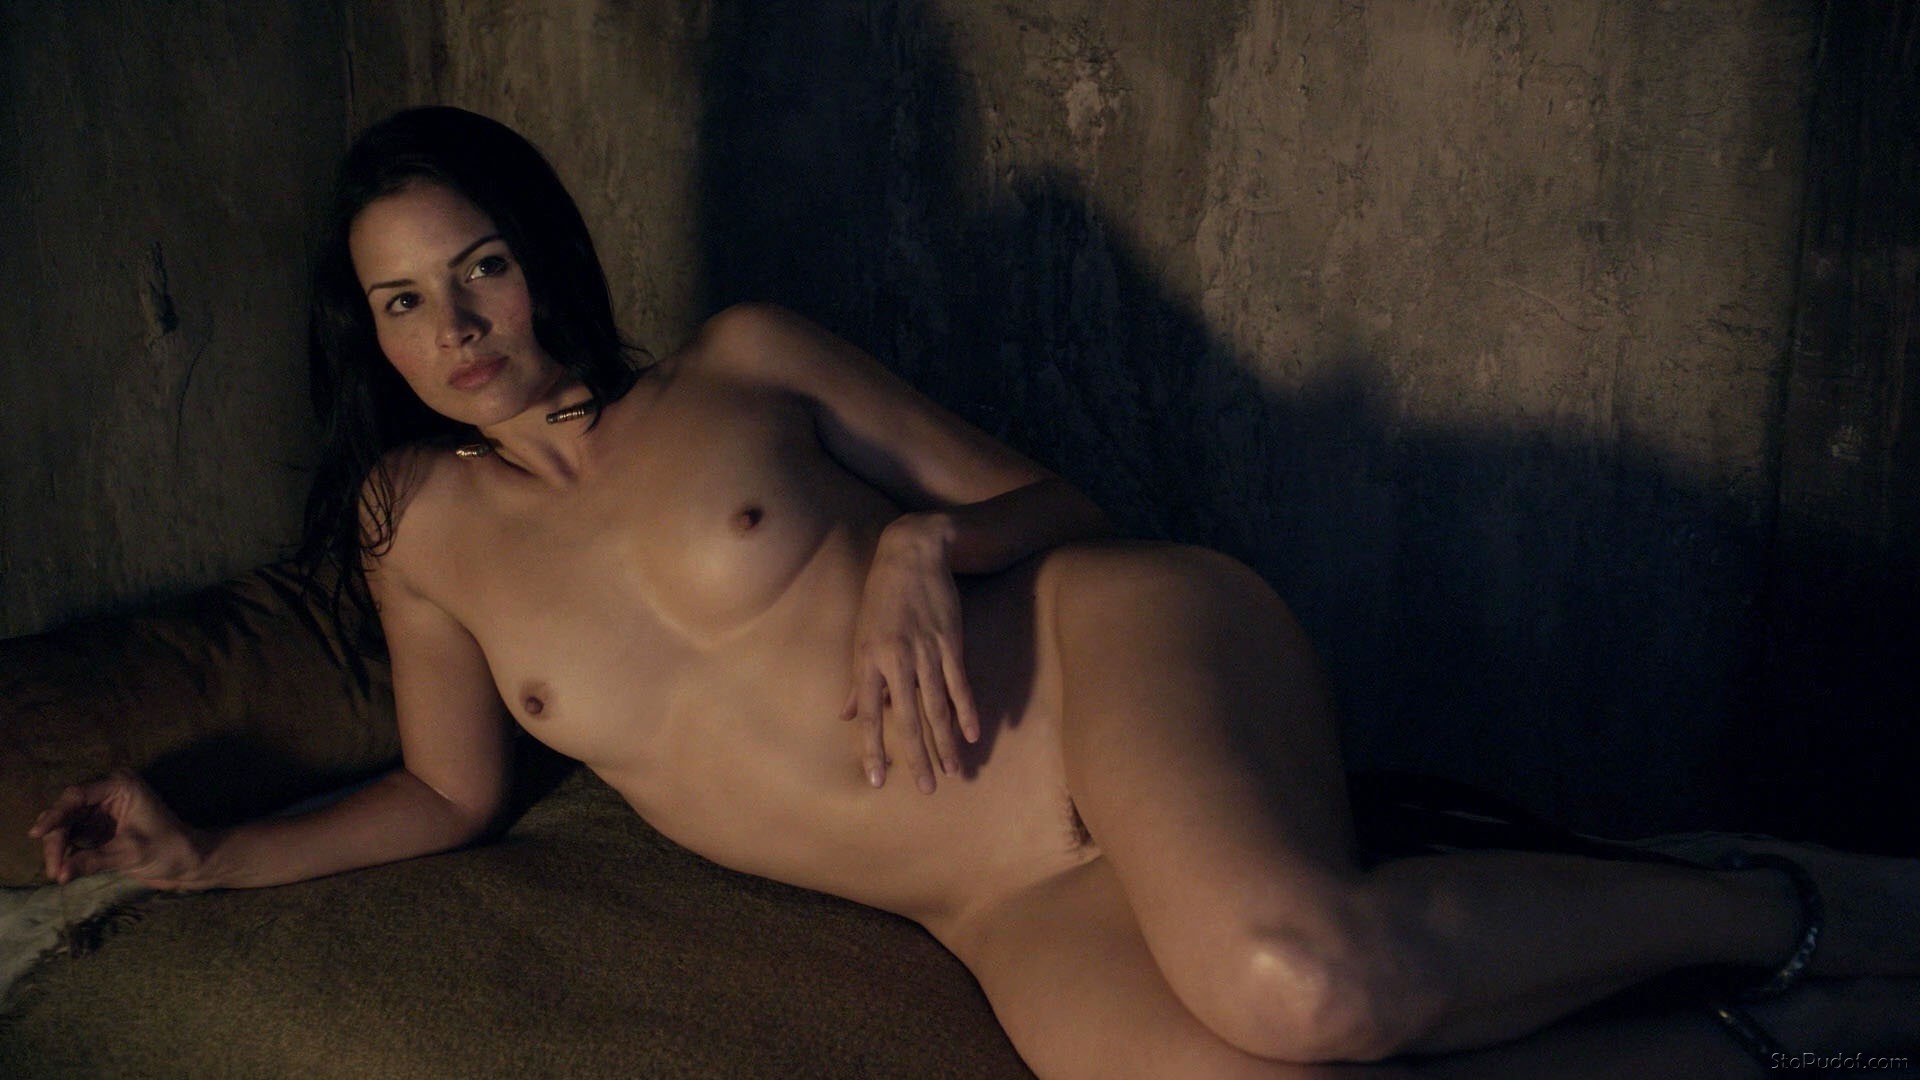 Katrina Law nude pics to see - UkPhotoSafari